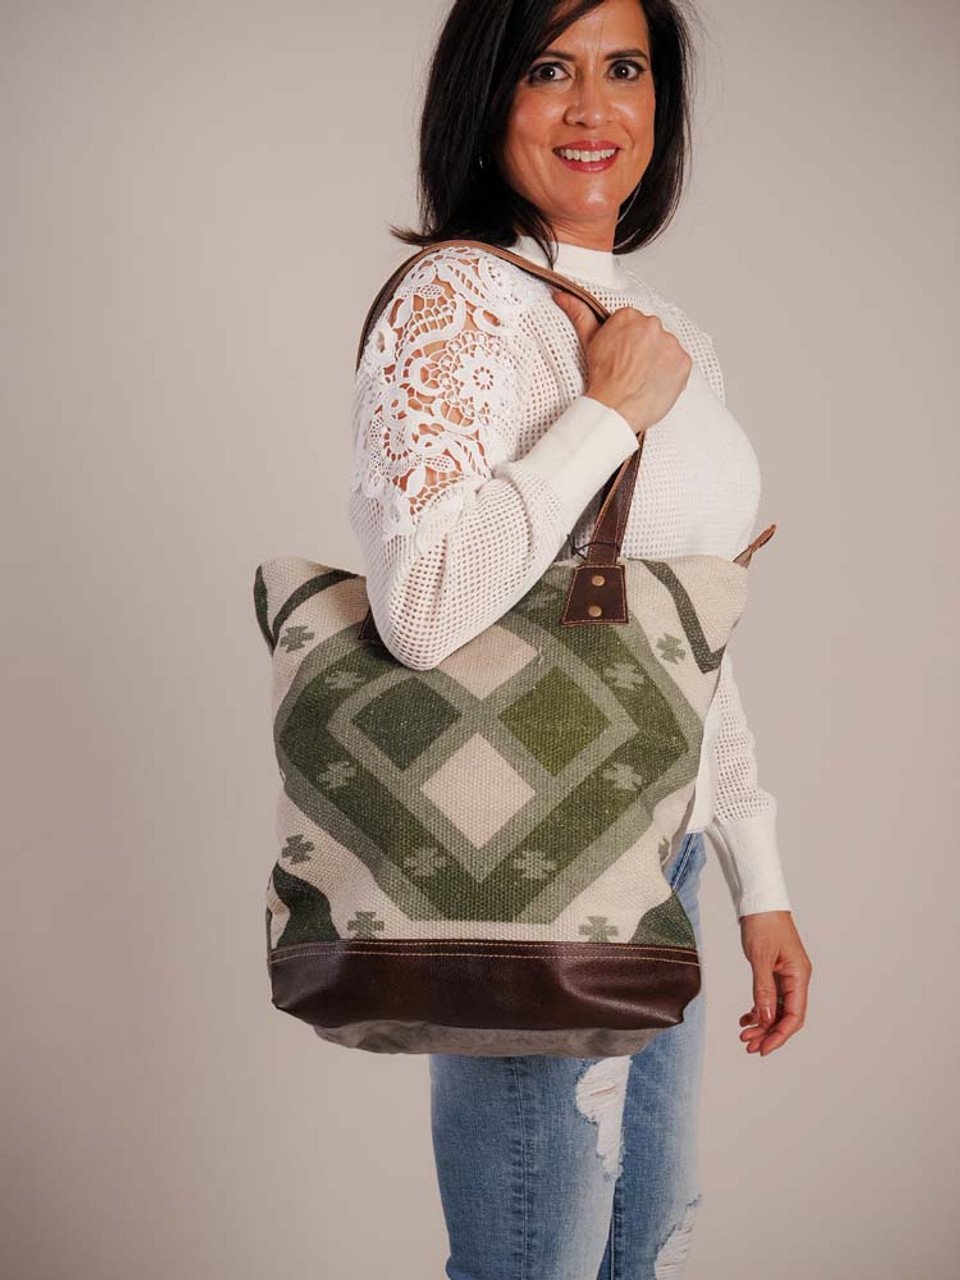 unique handwoven rug, this tote bag is both functional and fashionable. The beautiful combination of colors gives it an earthy charm. Zipper close at top, outside zipper pocket on back, interior has a zipper pocket on one side and two slip pockets